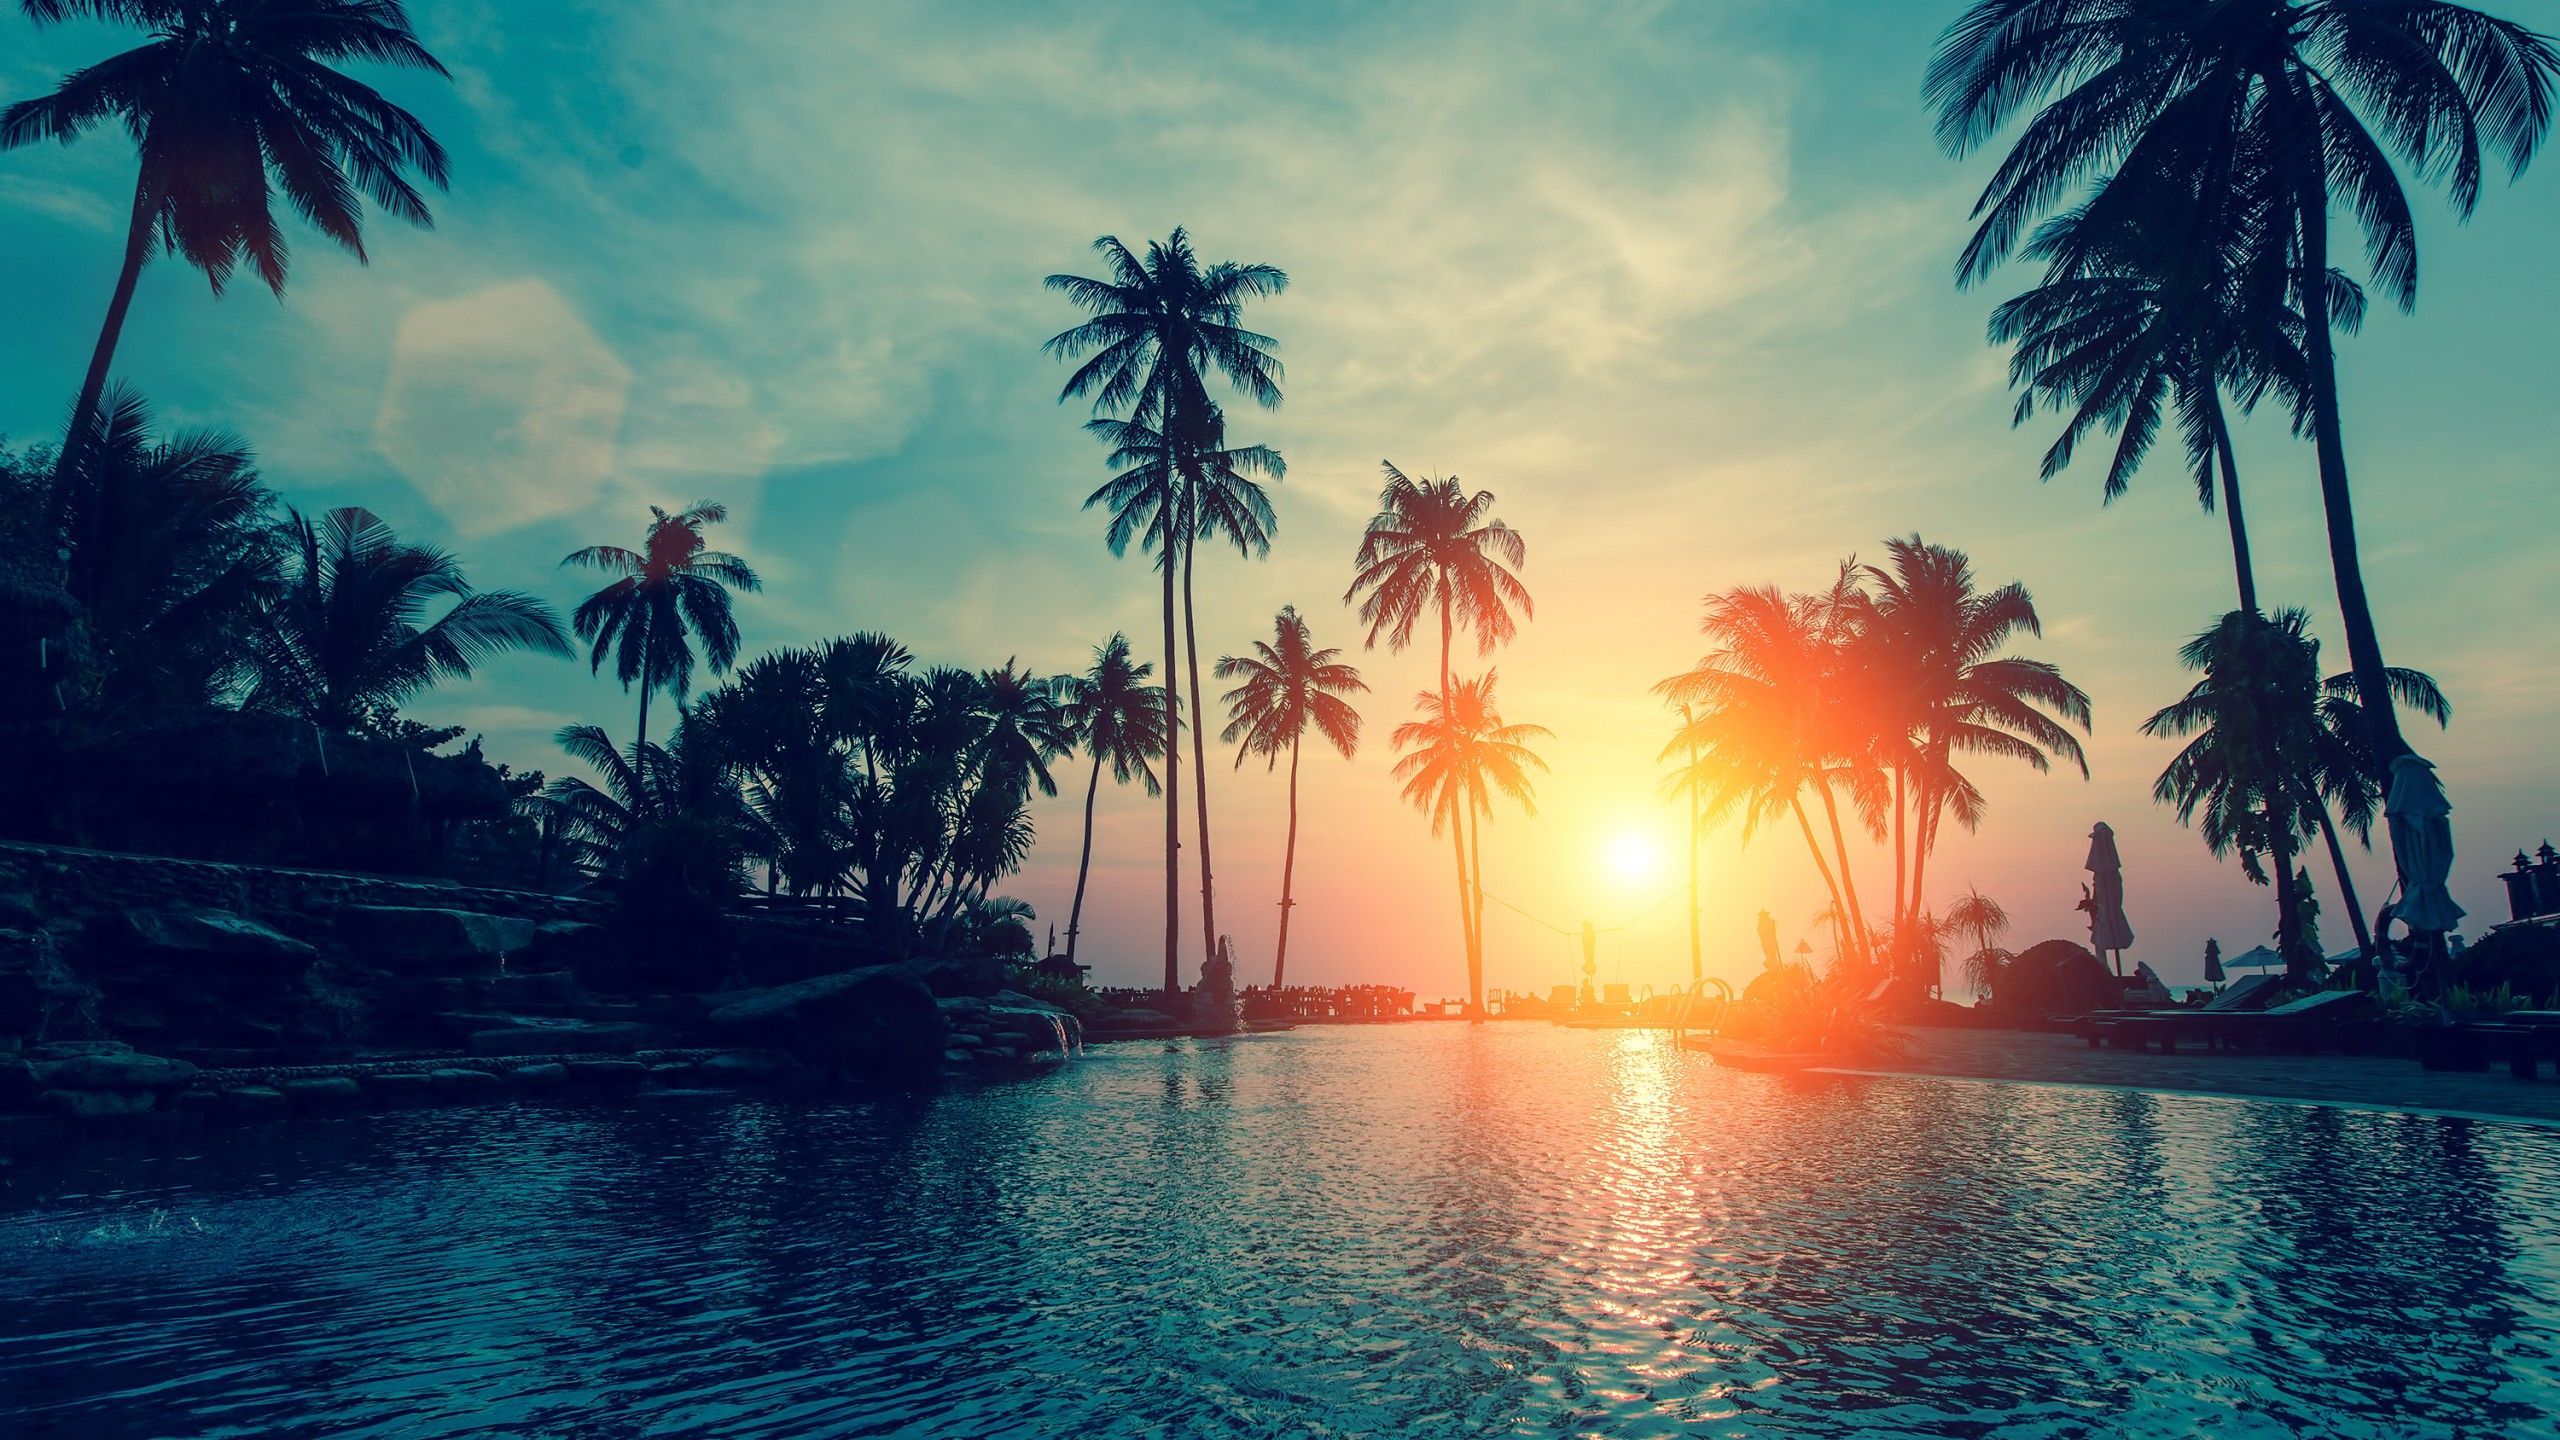 Palm Tree Hd Wallpapers Backgrounds Wallpaper Tree Hd Wallpaper Palm Trees Wallpaper Sunset Wallpaper